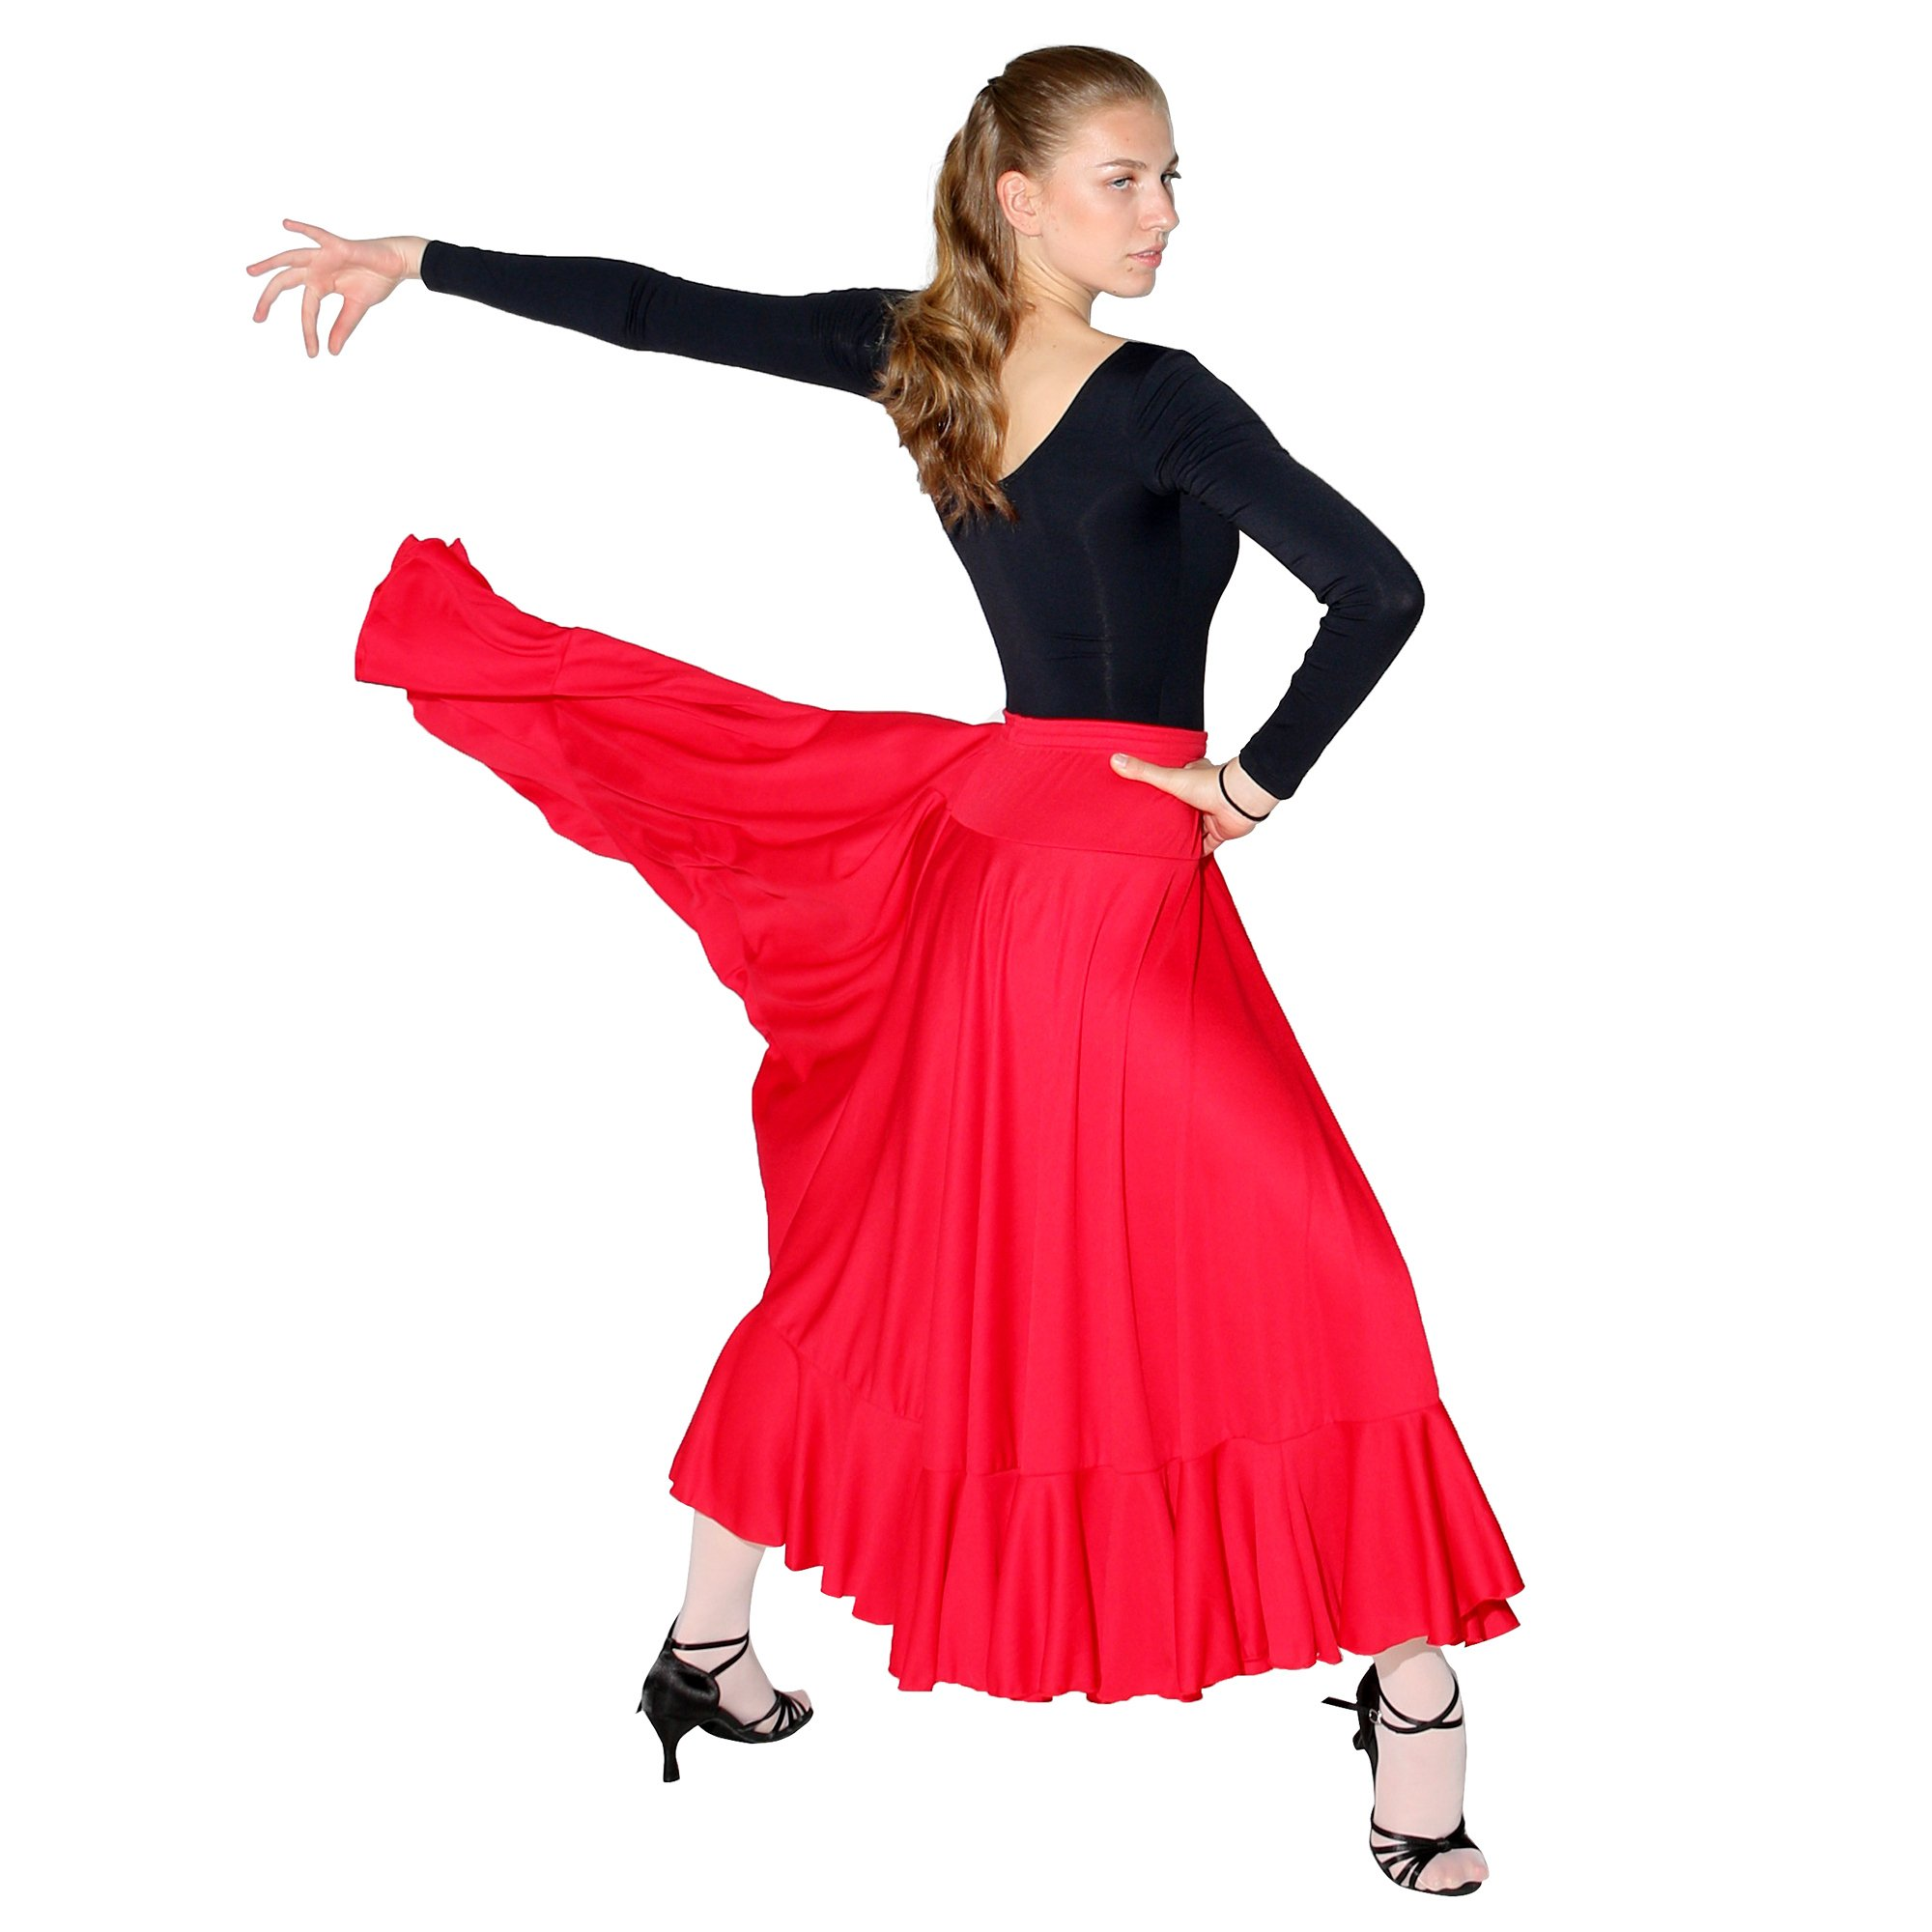 Danzcue Full Circle Flamenco Skirt